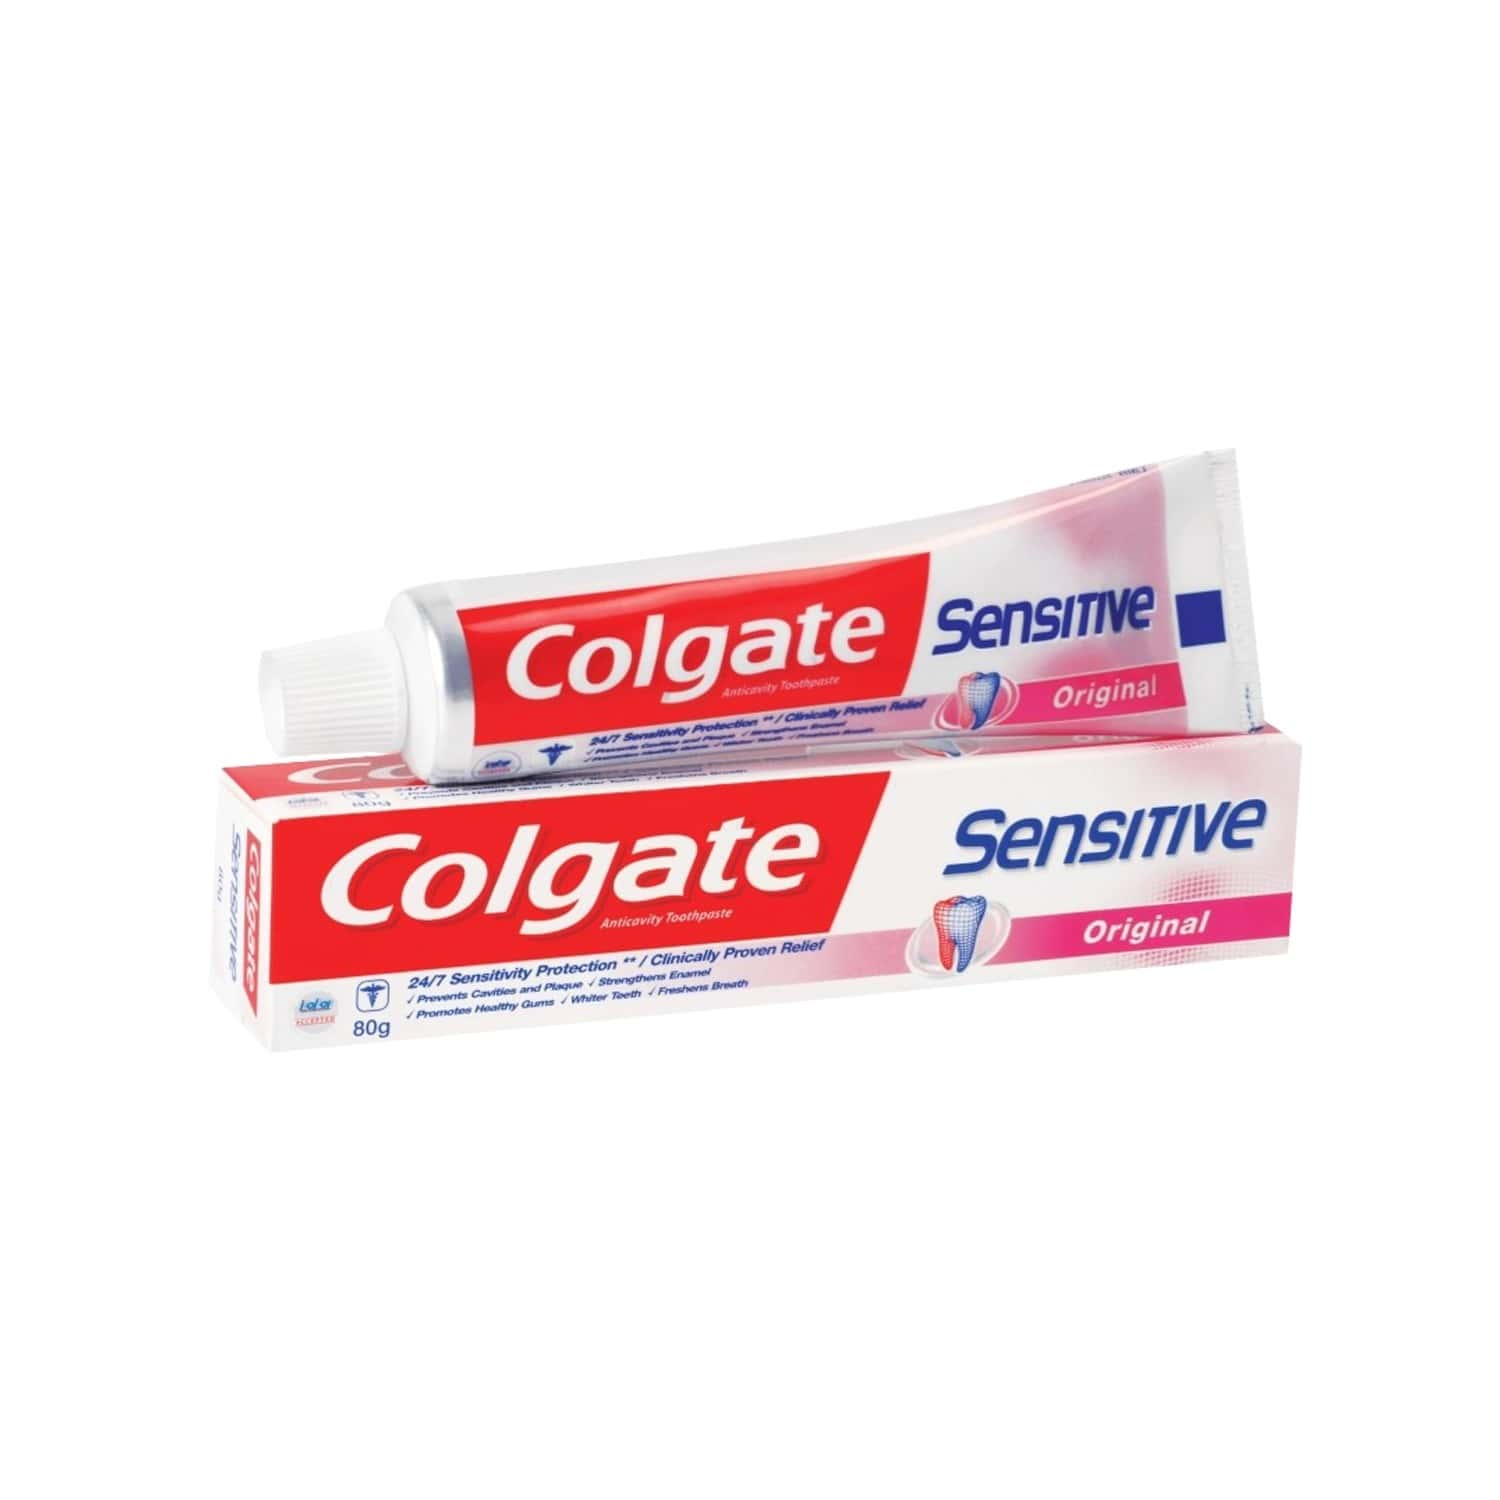 Colgate Toothpaste - Sensitive - 80 G - Sensitivity